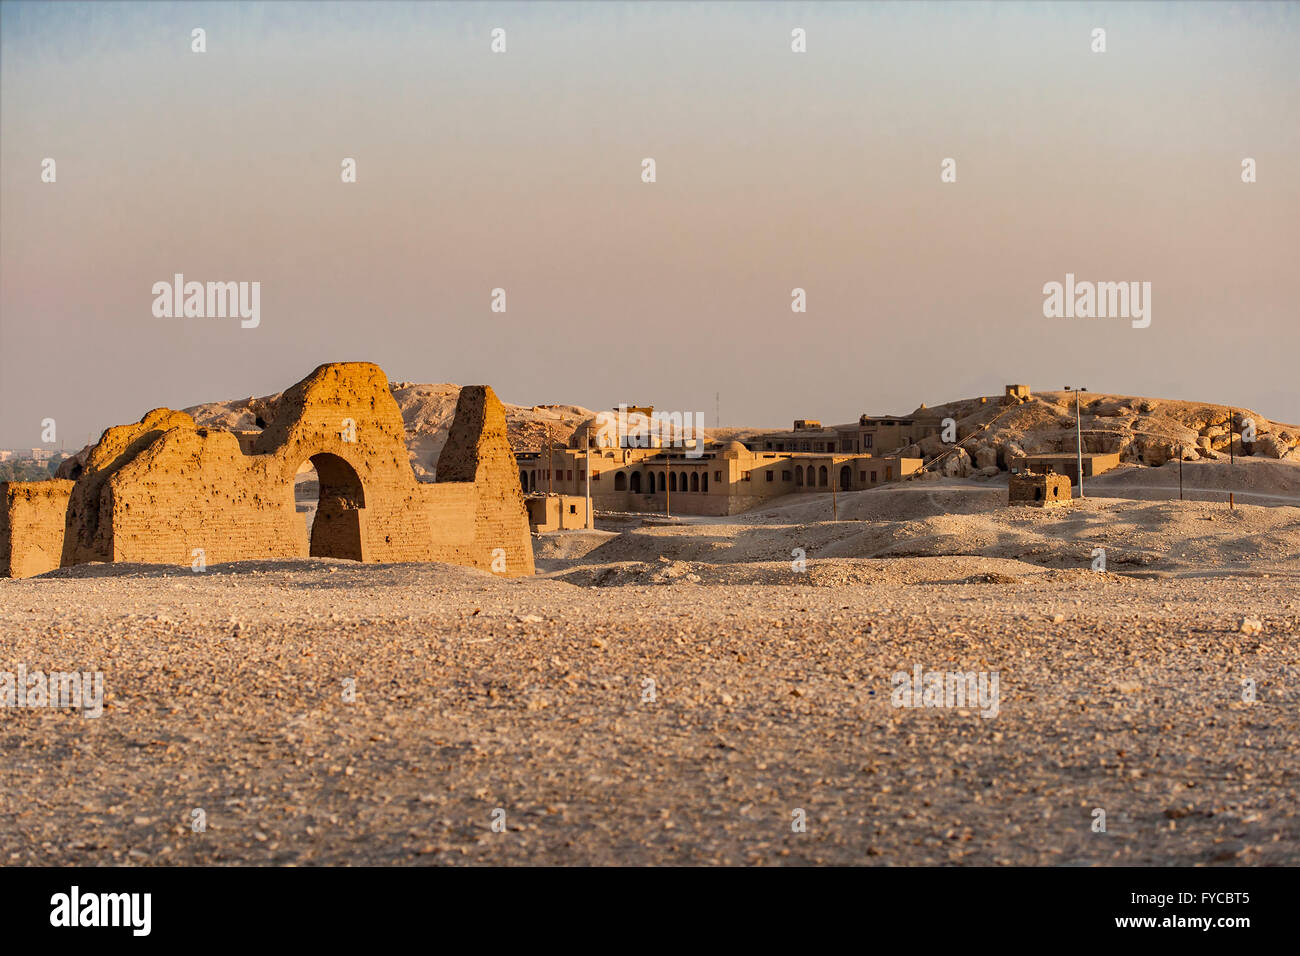 Image of ruins in the desert by Temple of Queen Hatsepsut, Egypt. - Stock Image